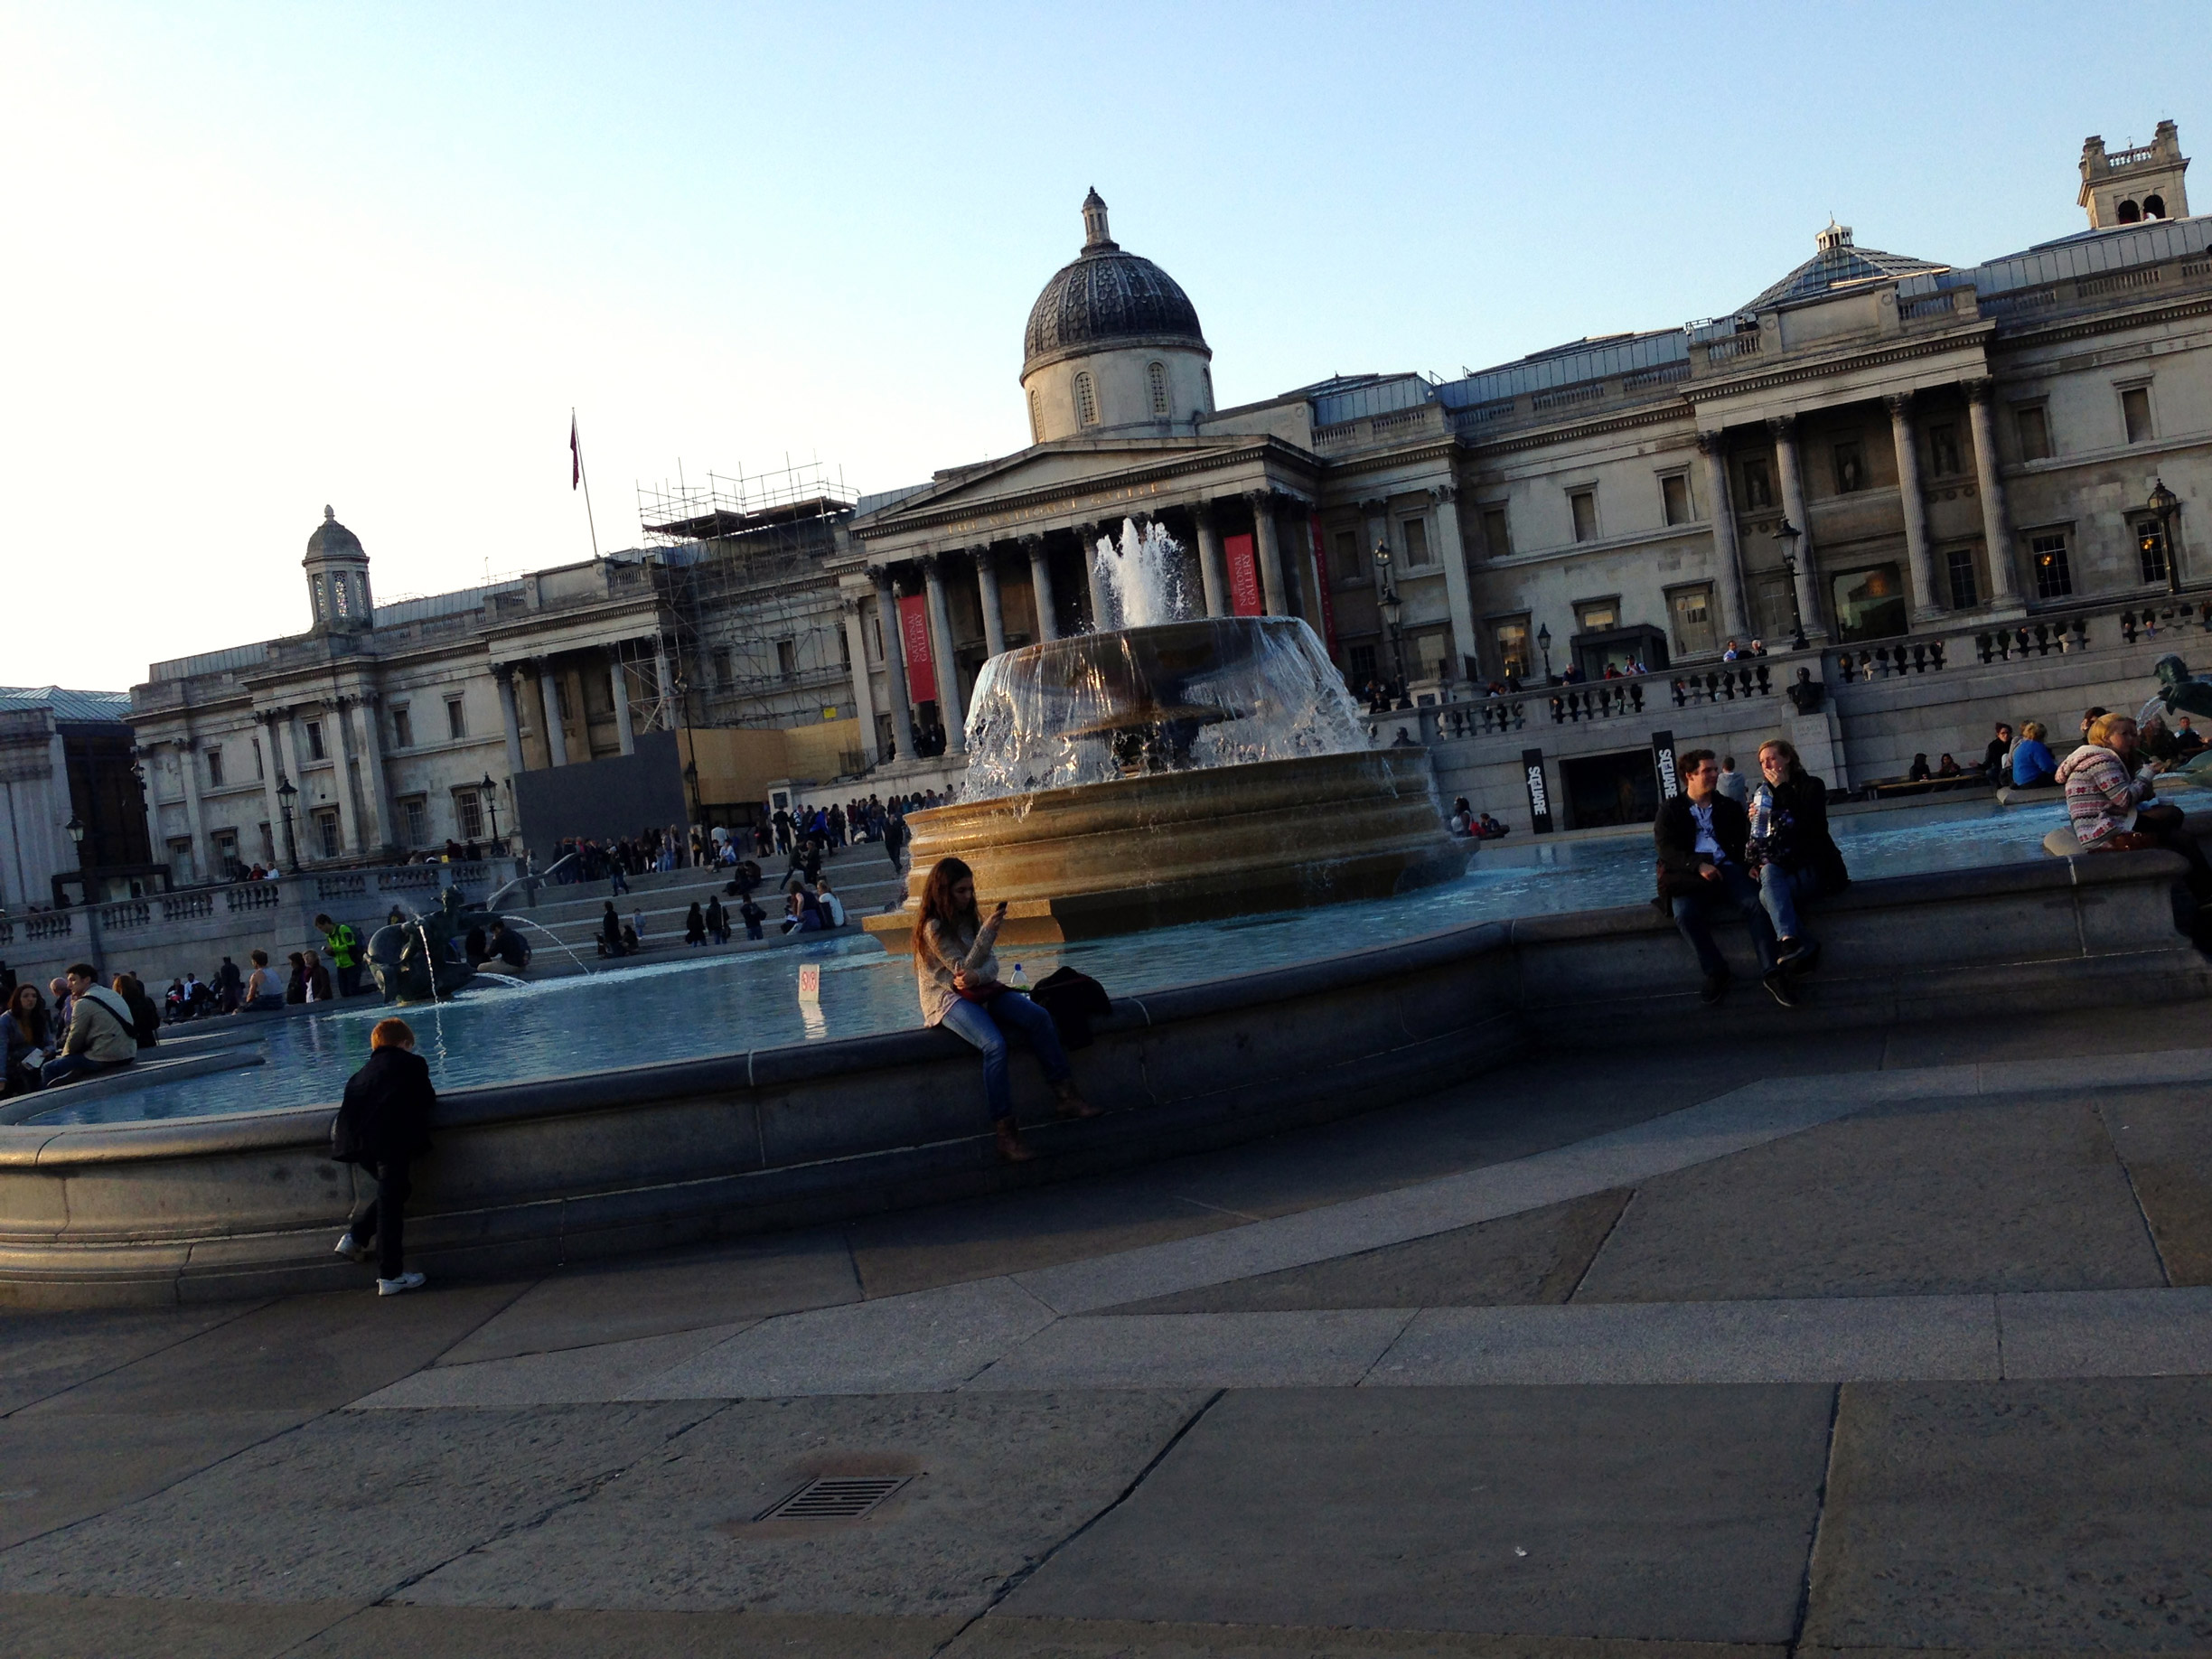 The National Gallery and Trafalgar Sqaure